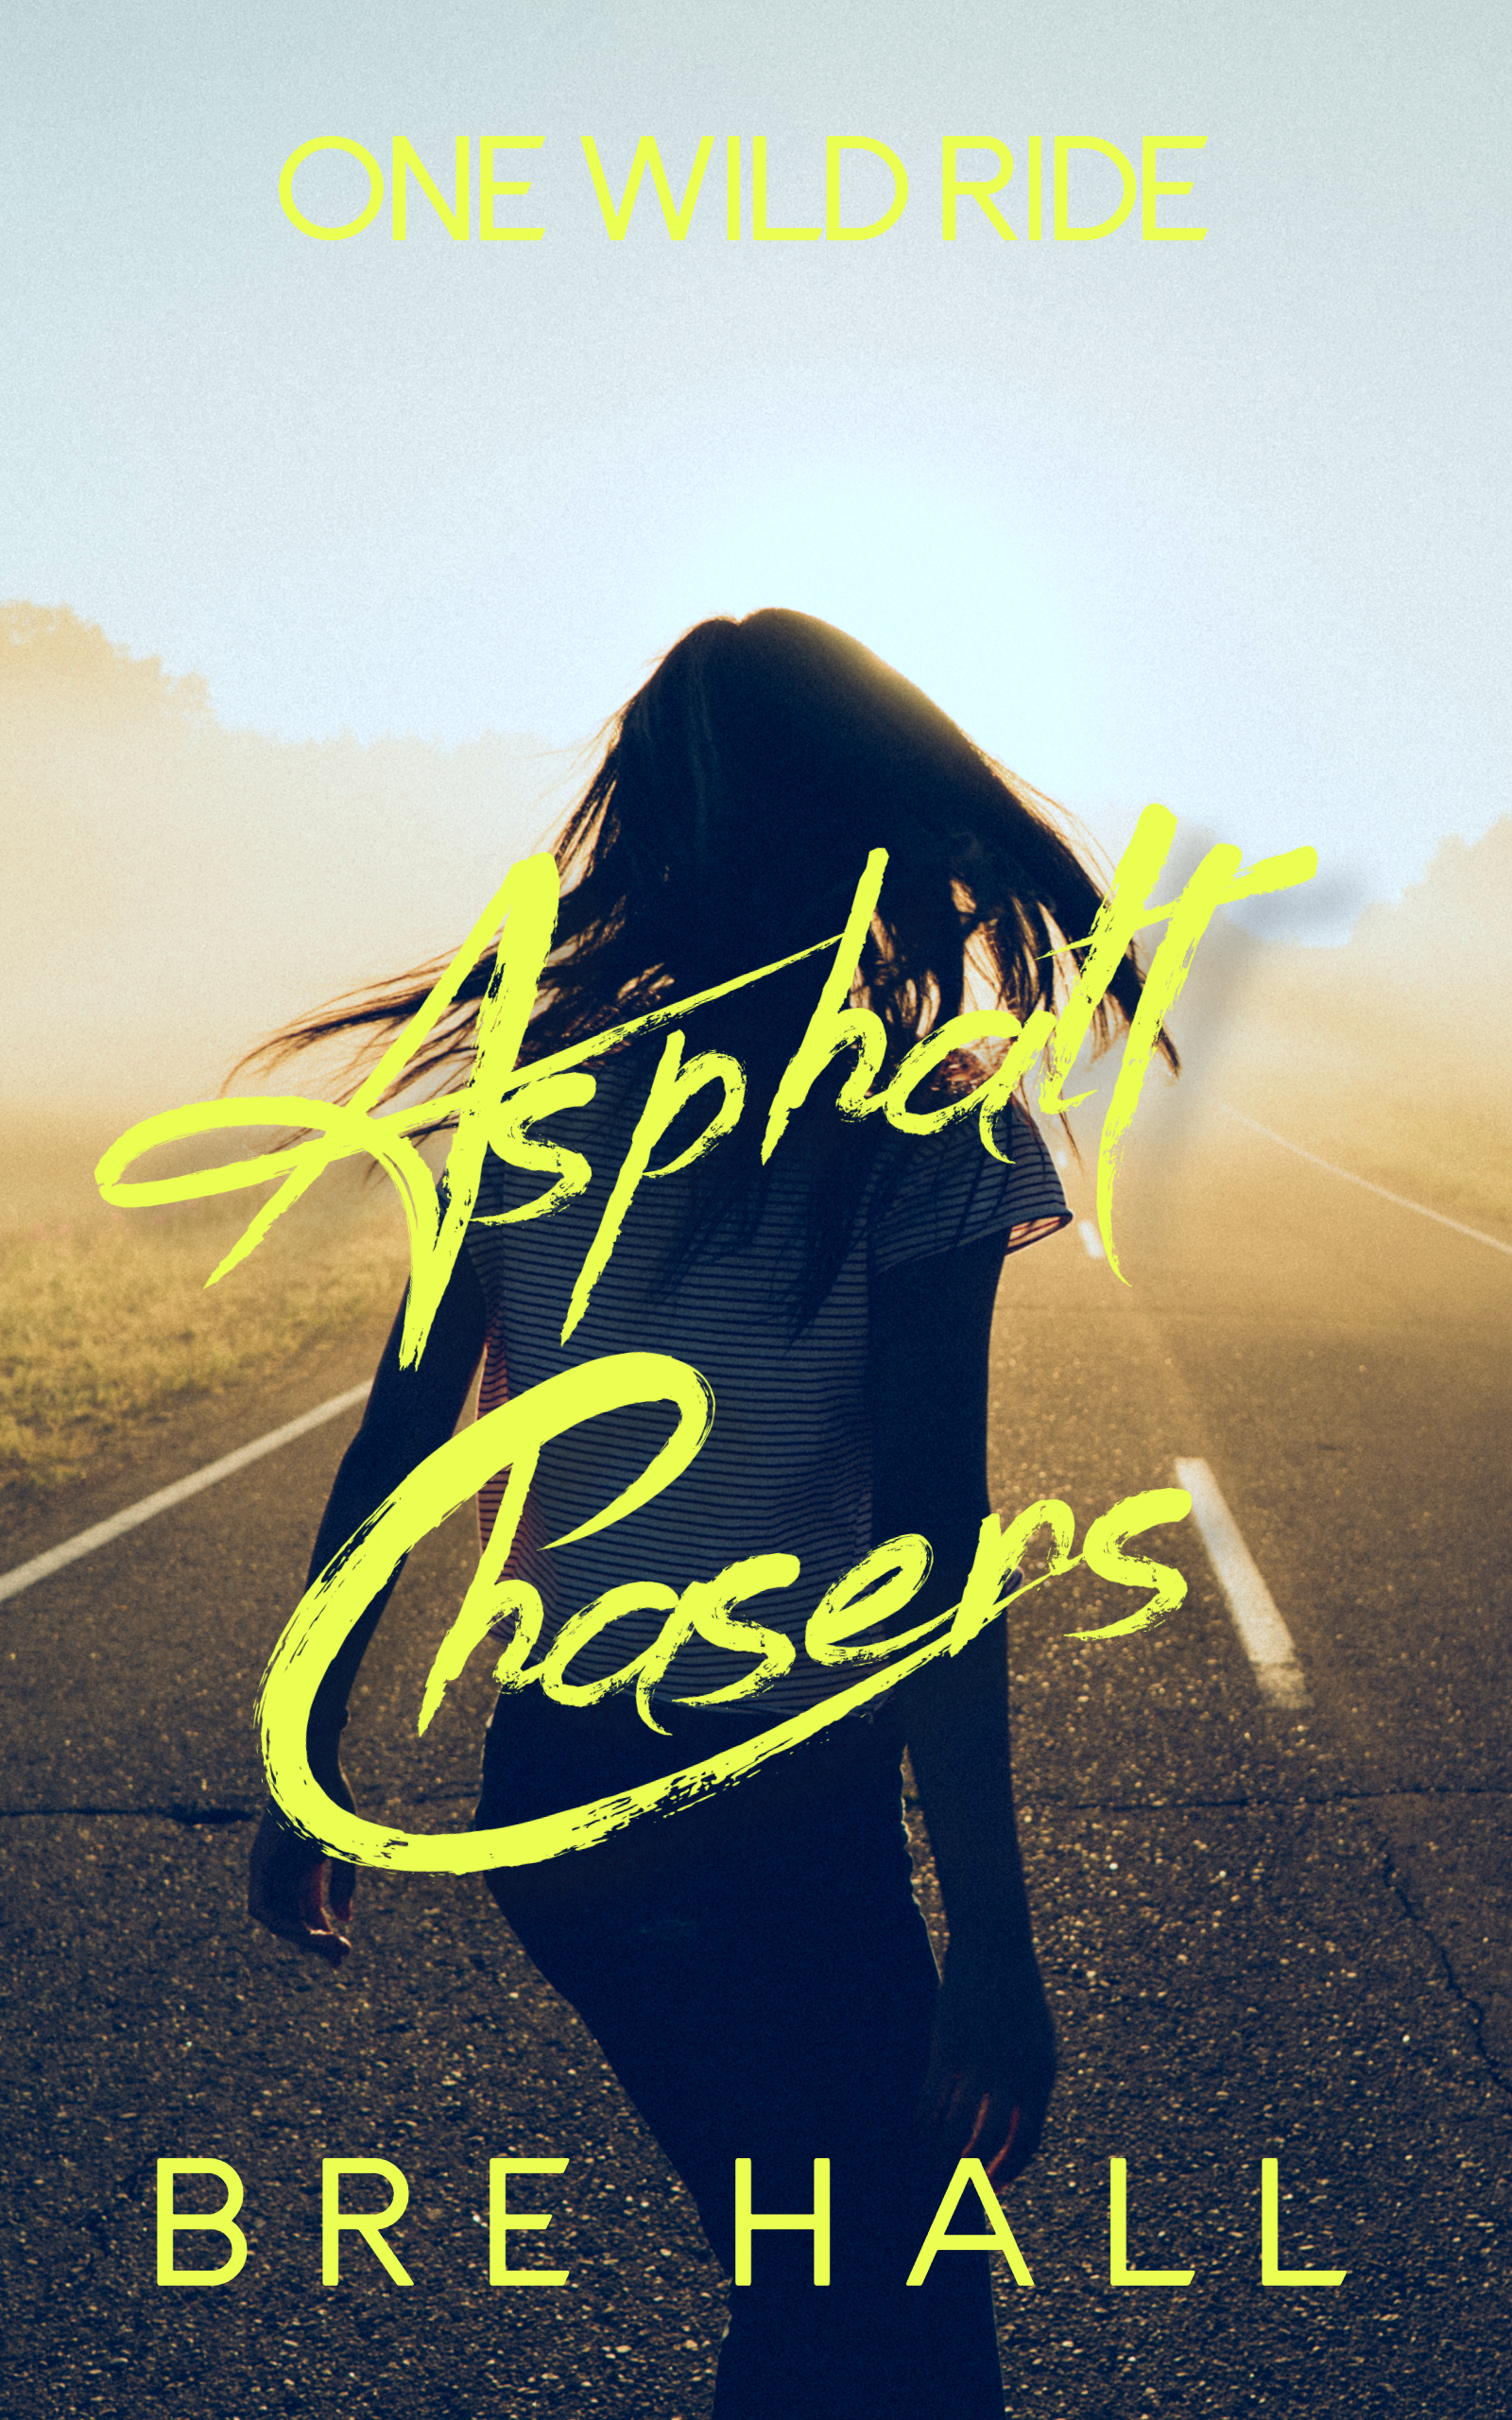 Asphalt Chasers by YA author Bre Hall